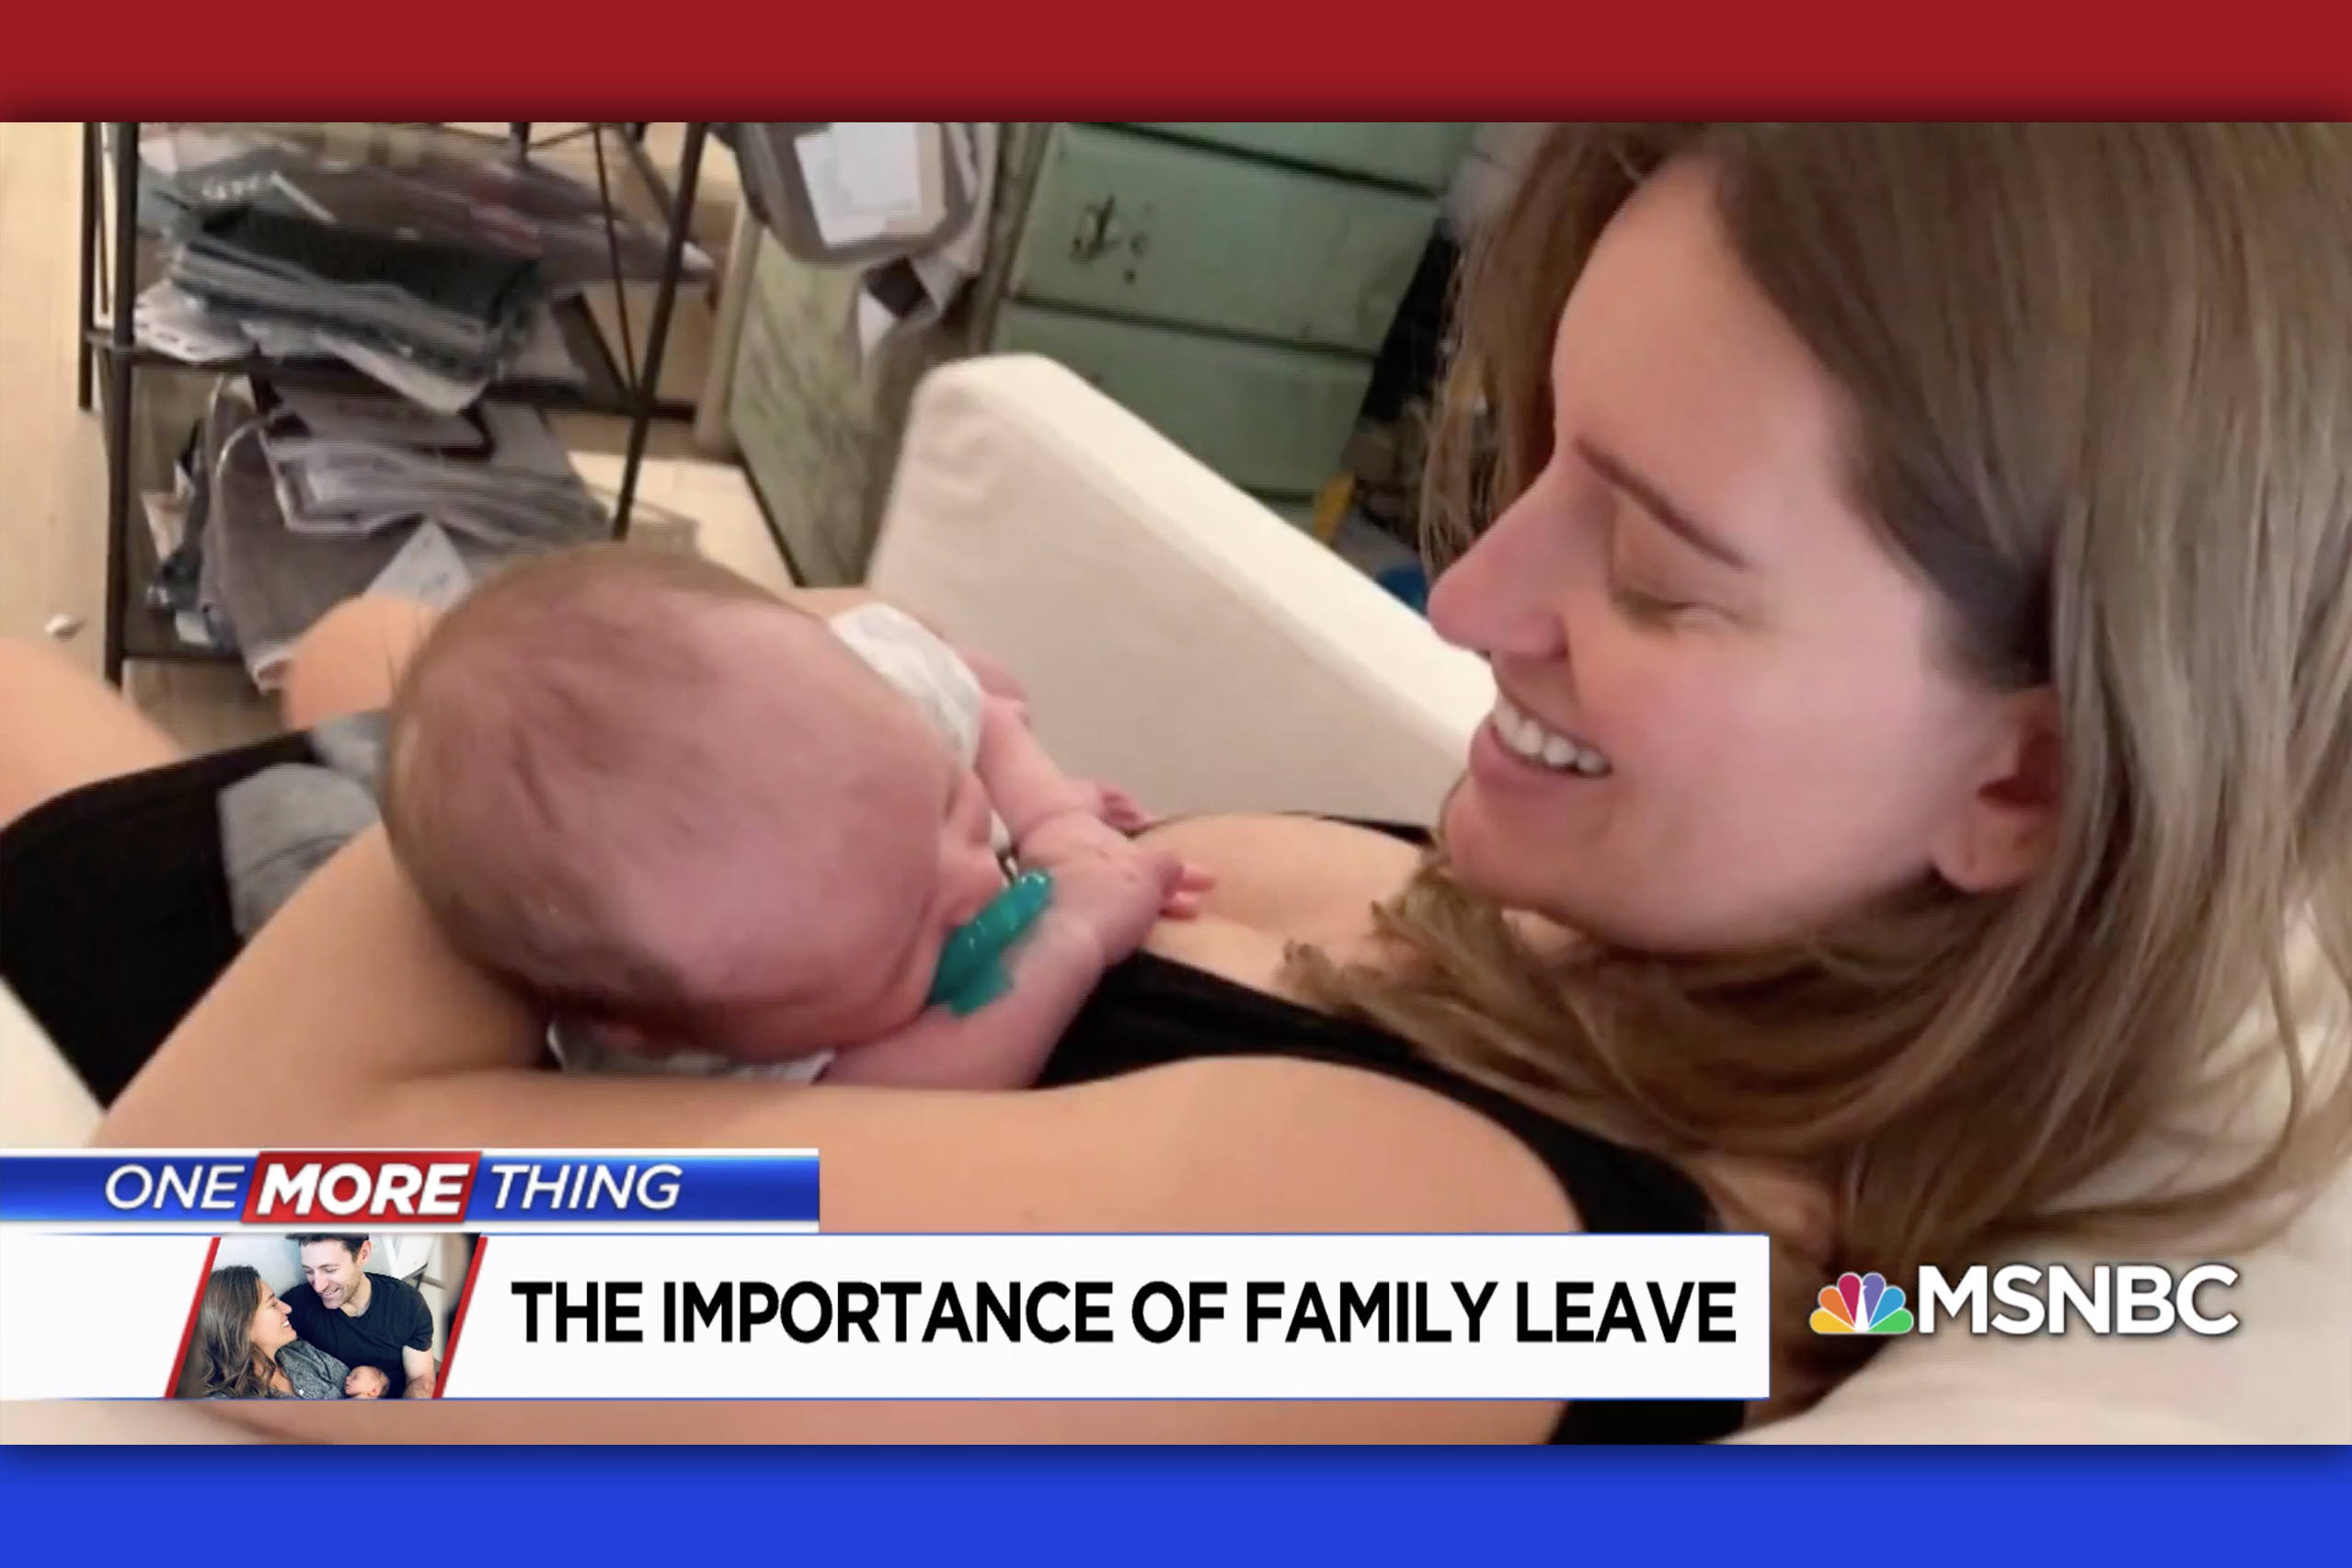 Survey: Fewer than 3 in 10 U.S. workers have eight-plus weeks of maternity leave